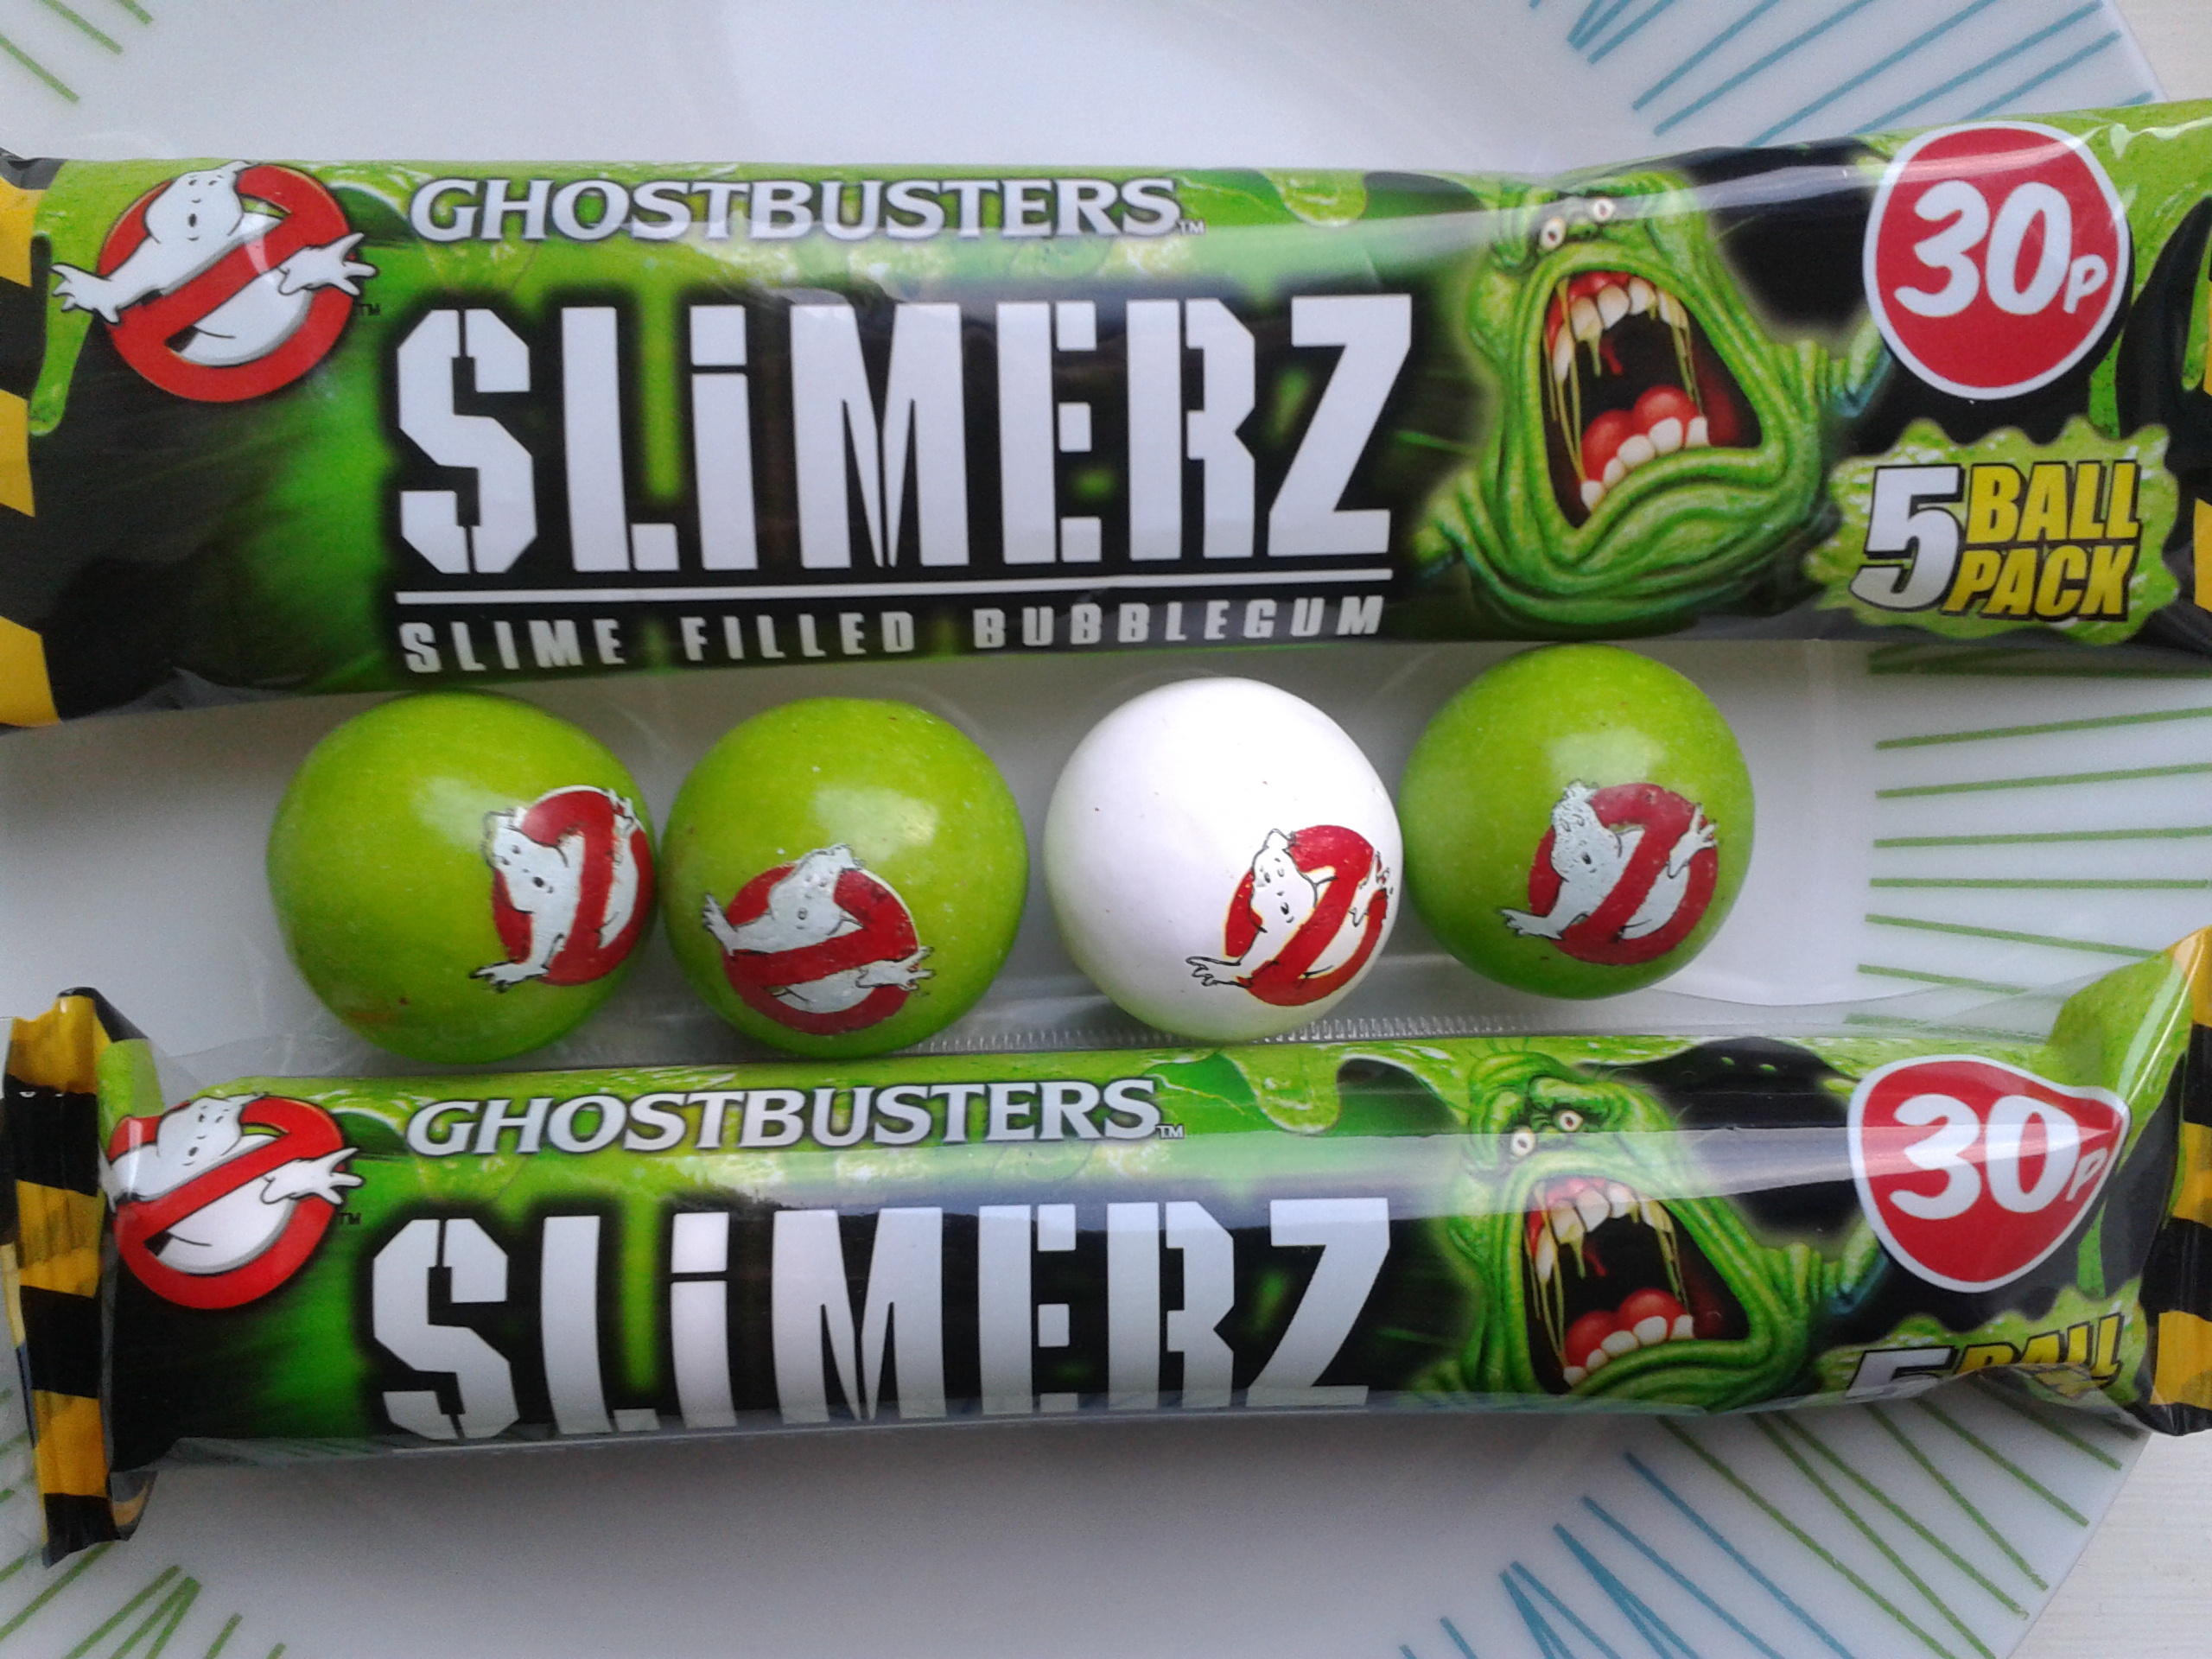 Ghostbusters Slimerz Bubblegum Pack Review - Halloween Love